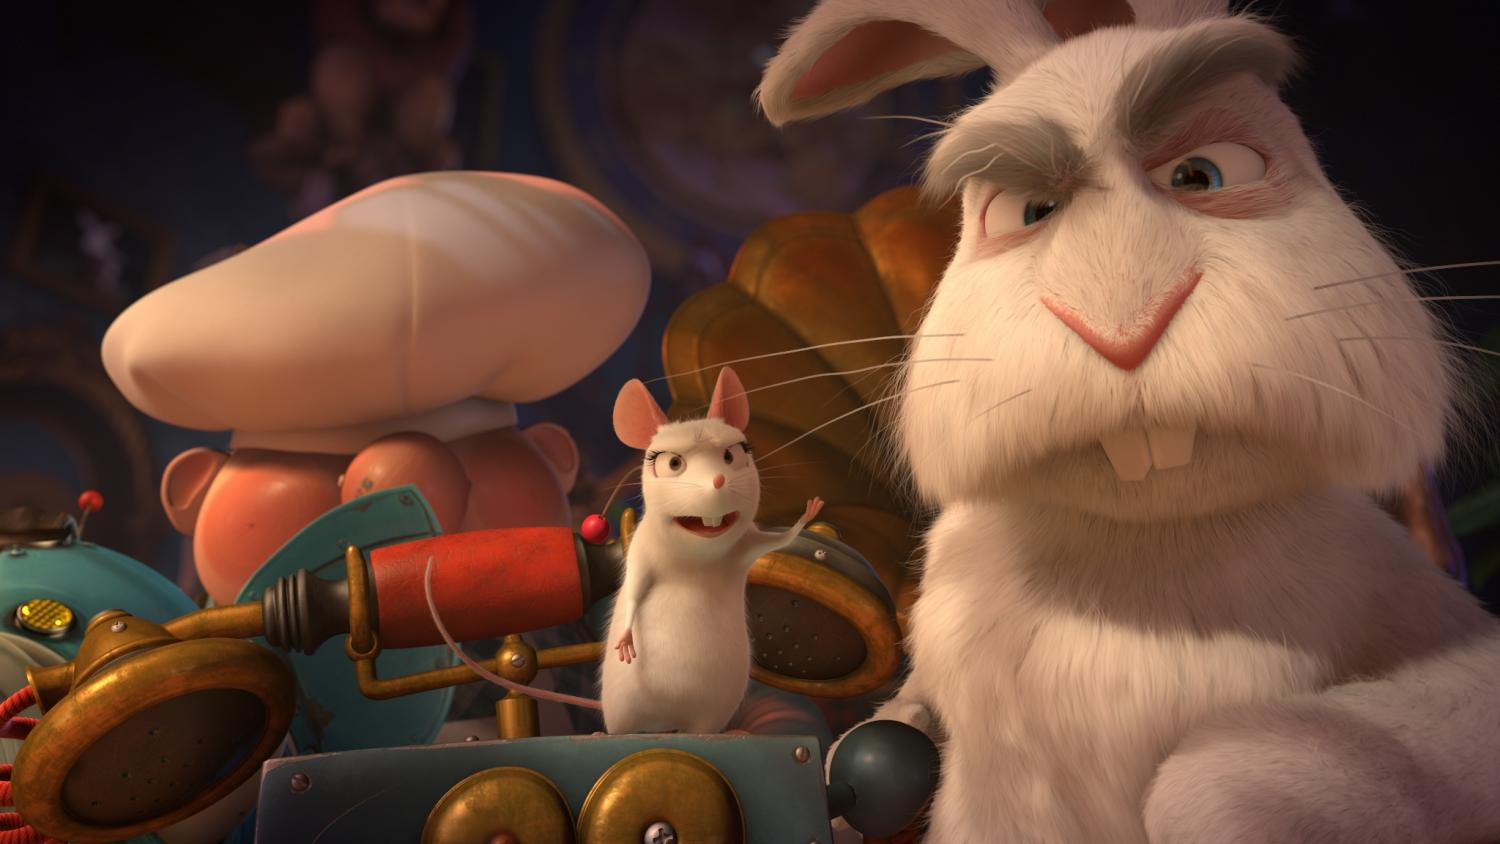 My First Job in Film: What is an animated feature film?